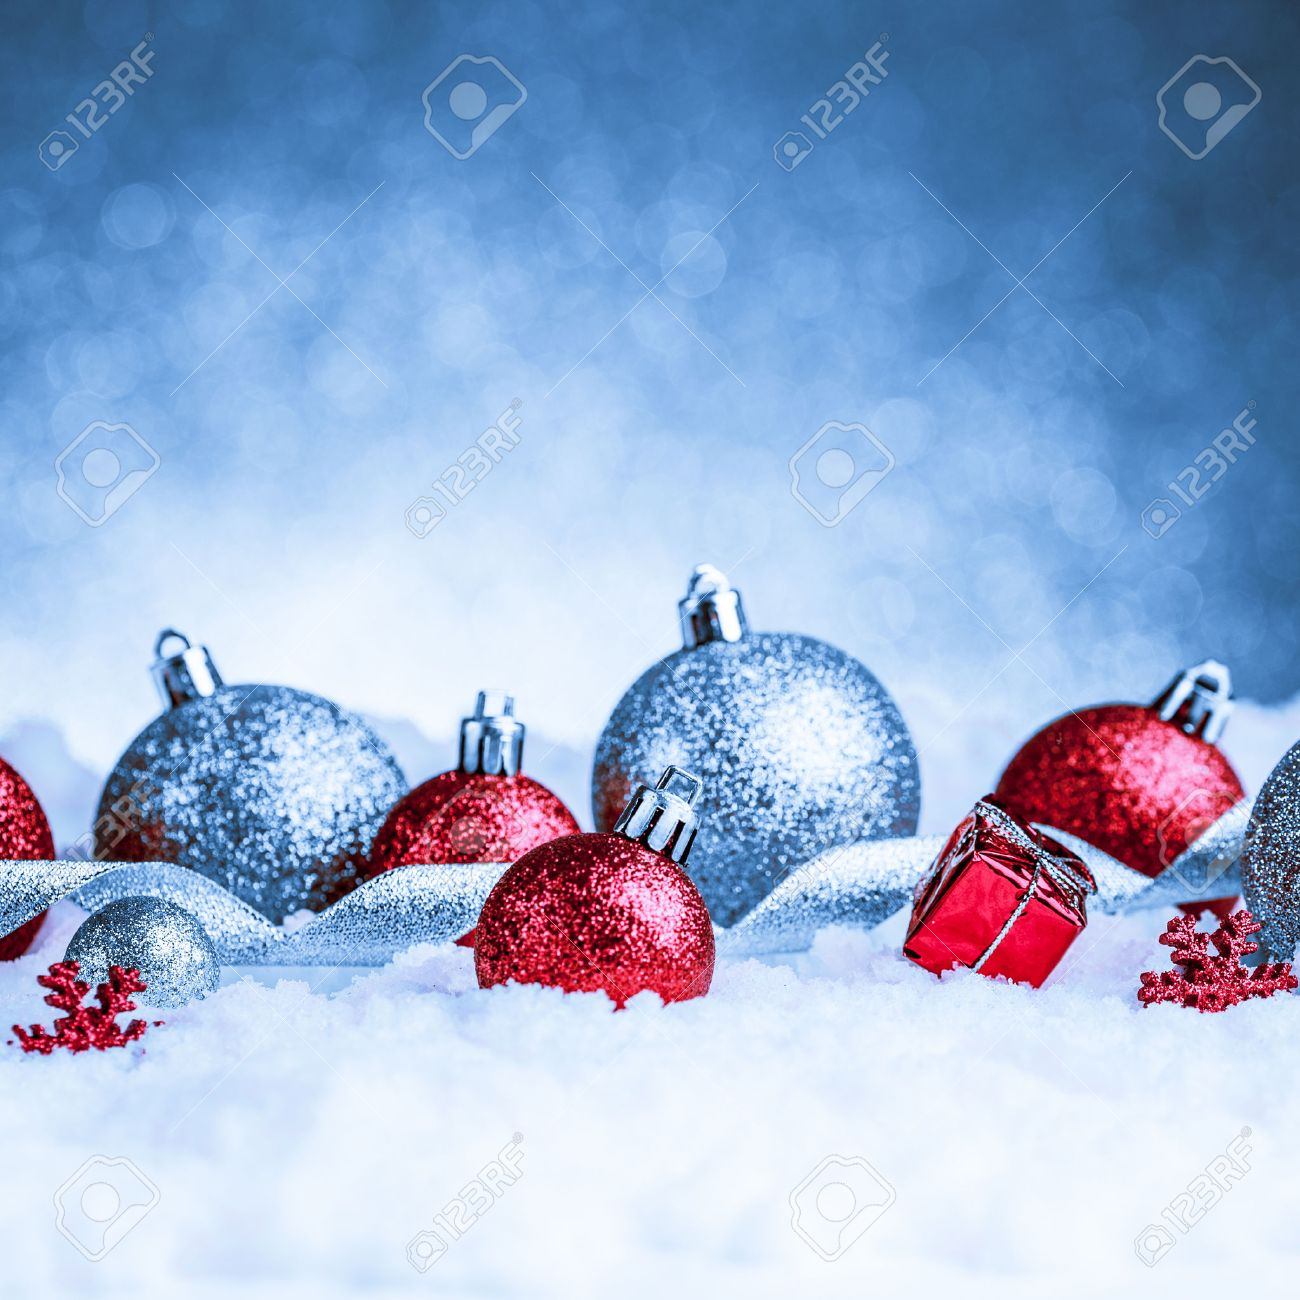 christmas ornament in snow on glitter background. studio shot Stock Photo - 34400663